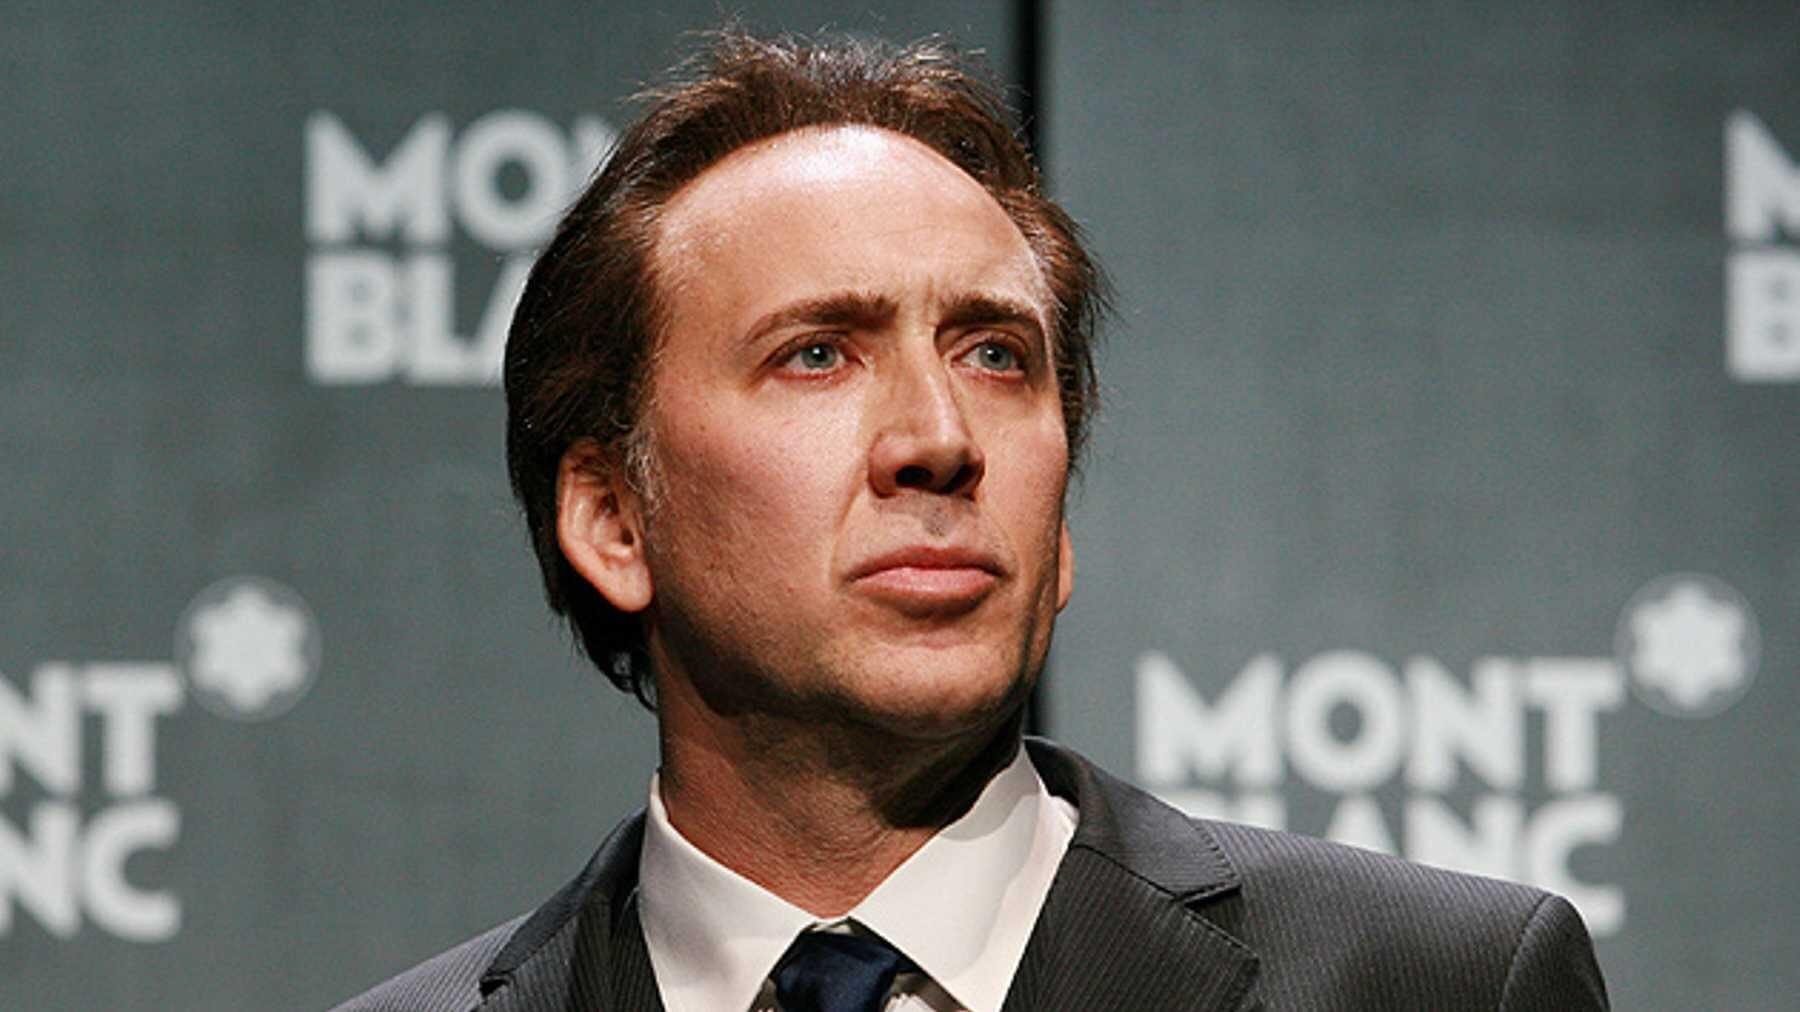 Nicolas Cage to play Joe Exotic in scripted version of Netflix's Tiger King